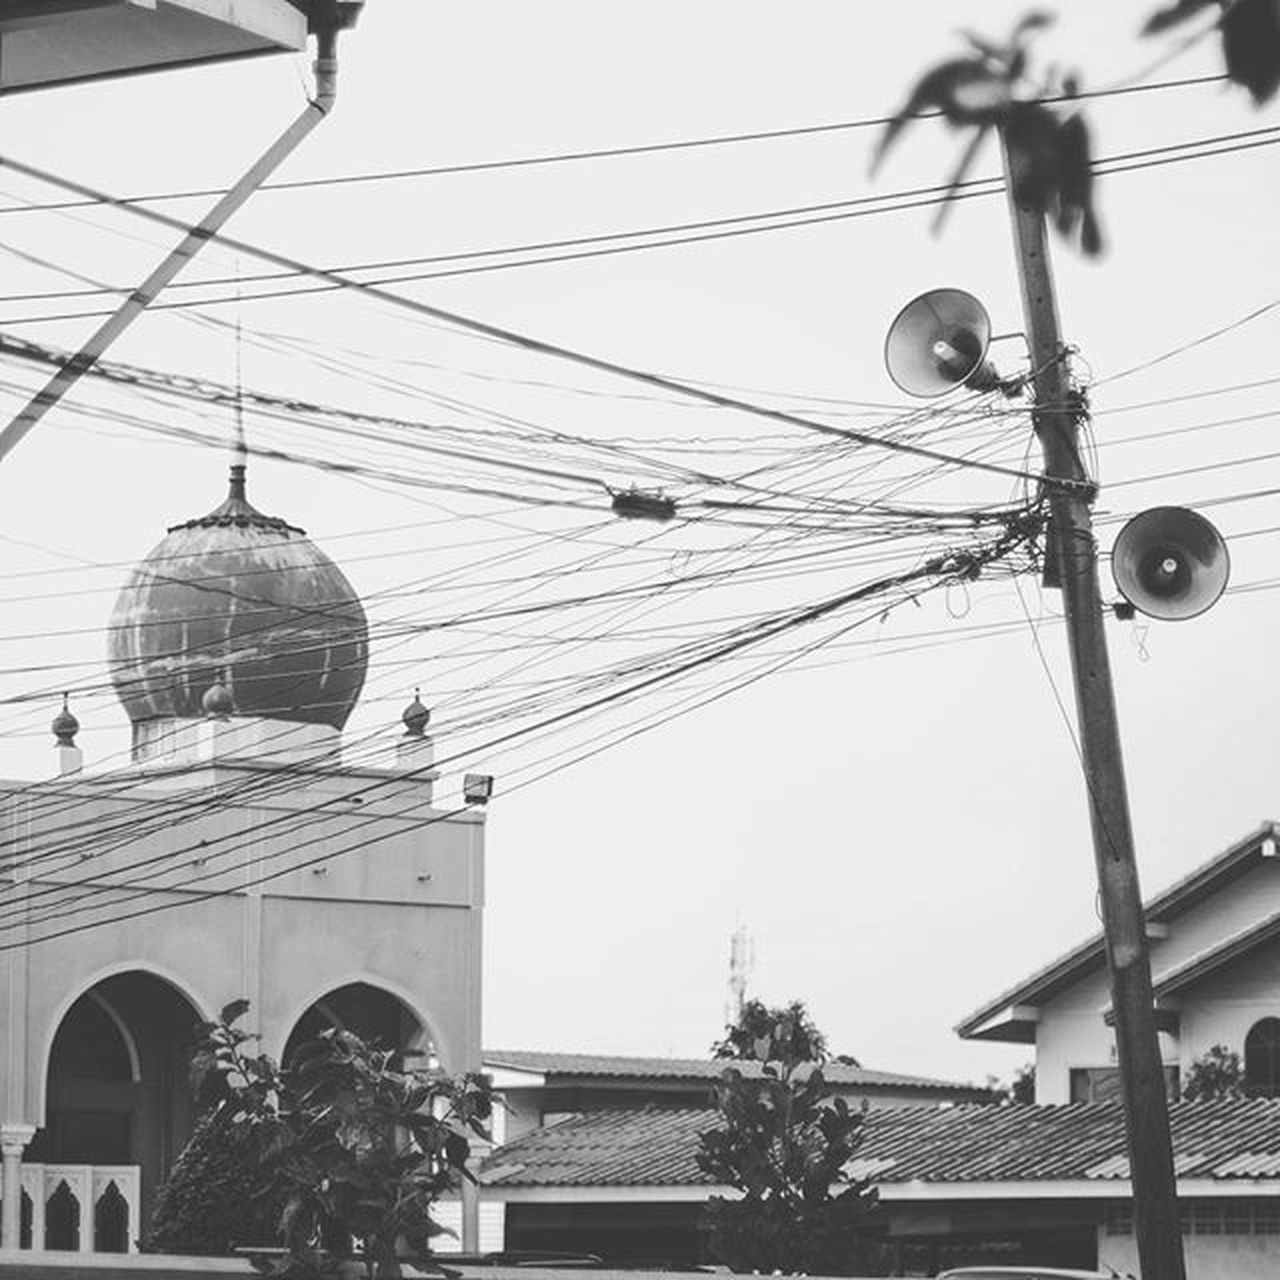 Religion Islam Mosque Bokeh Picture Photo CameraMan Photographer Fujifilm Fujixe1 Fujithailand Xe1 Lens Manuallens Cannon Vintagelens Canonfd50mm Canonfd50mmf1_4 50mm F1_4 50mmlens Thailand Bangkok City Monochrome